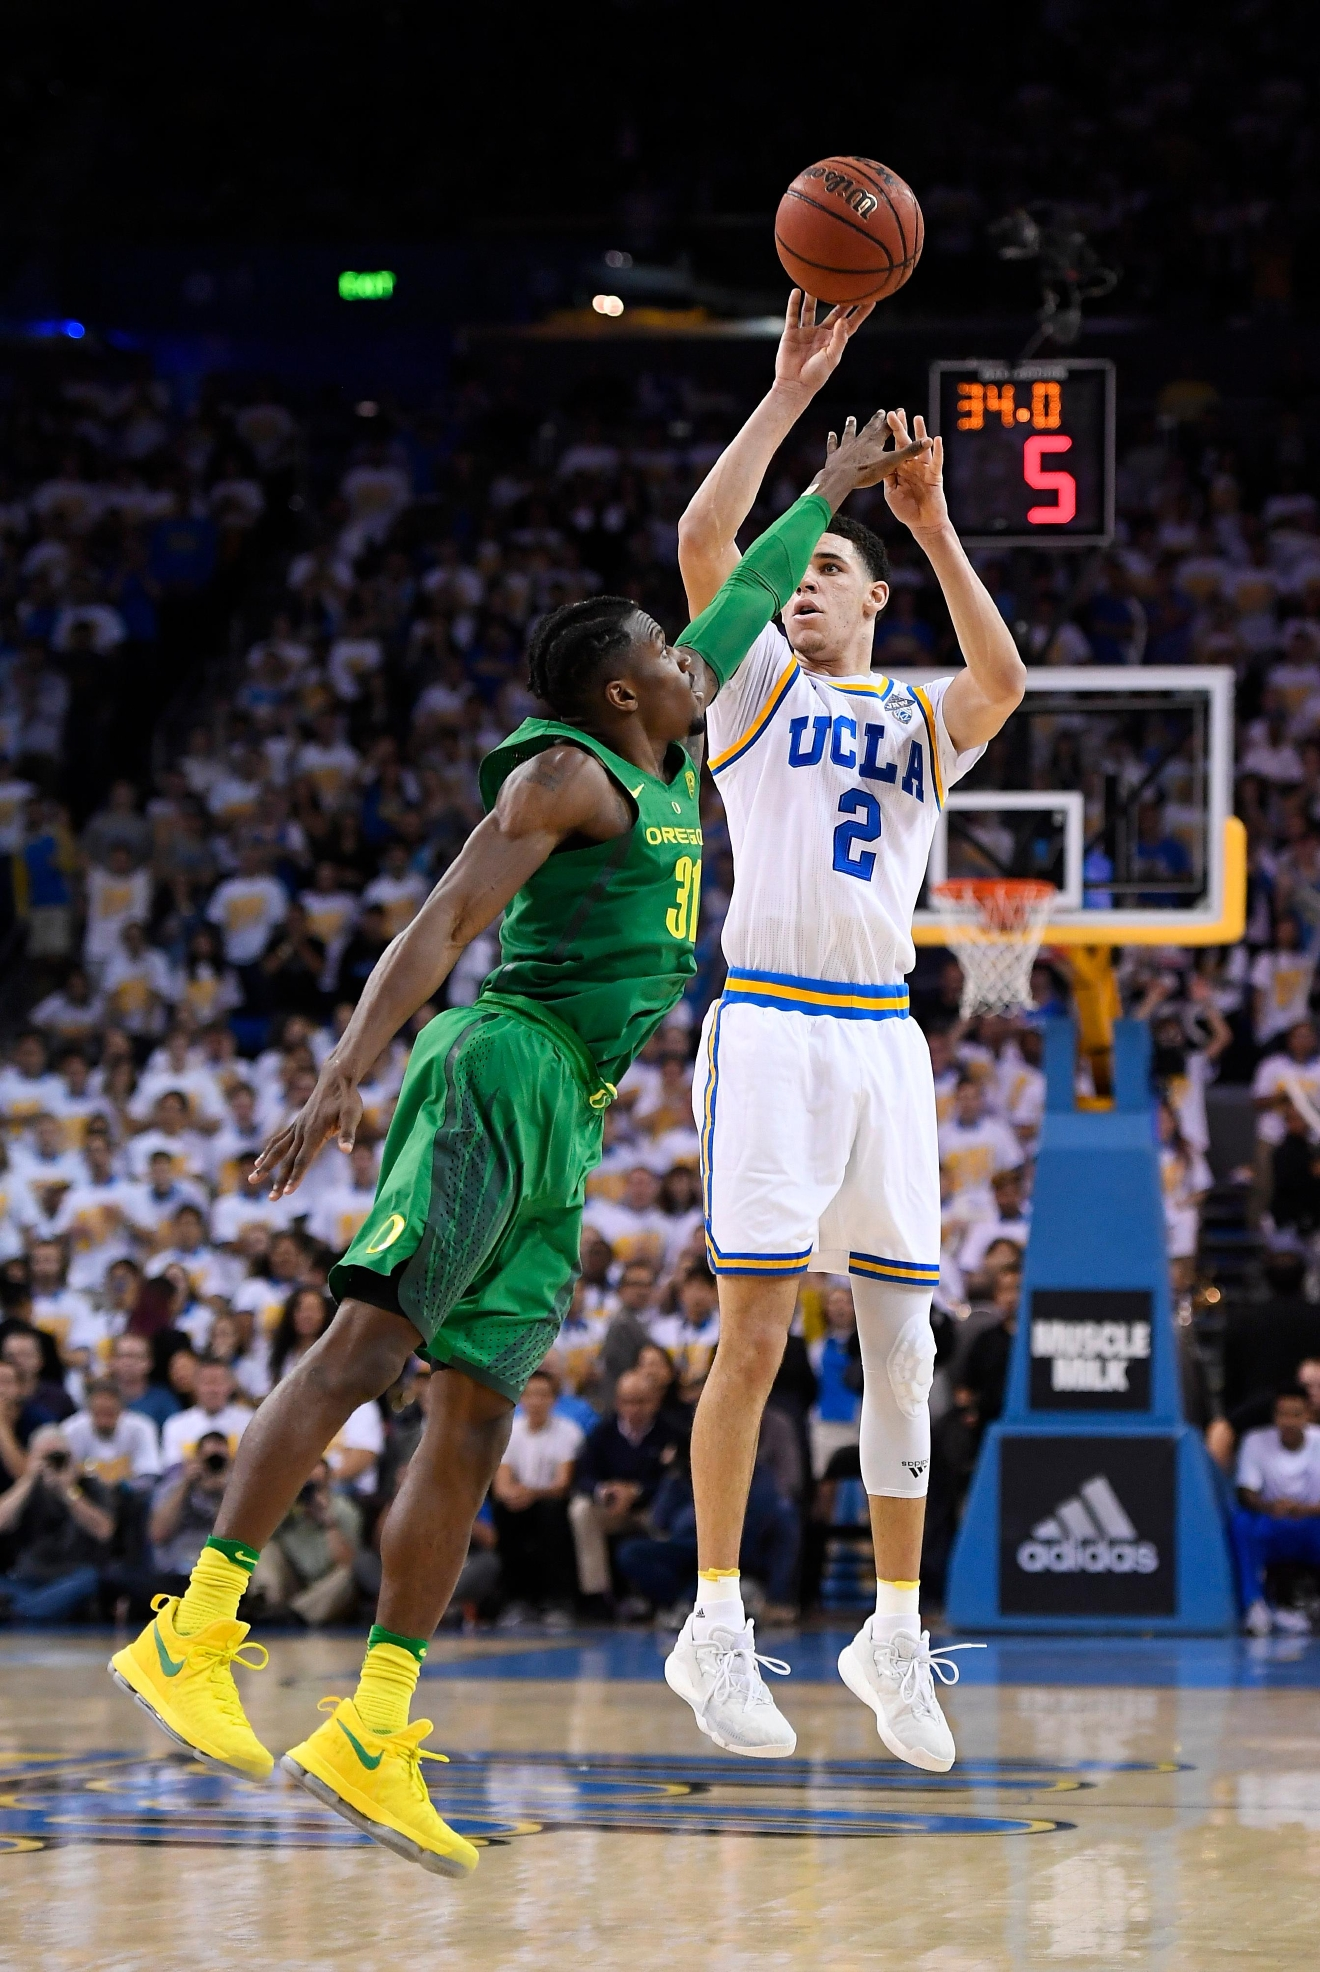 UCLA guard Lonzo Ball, right, shoots as Oregon guard Dylan Ennis defends during the second half of an NCAA college basketball game, Thursday, Feb. 9, 2017, in Los Angeles. UCLA won 82-79. (AP Photo/Mark J. Terrill)